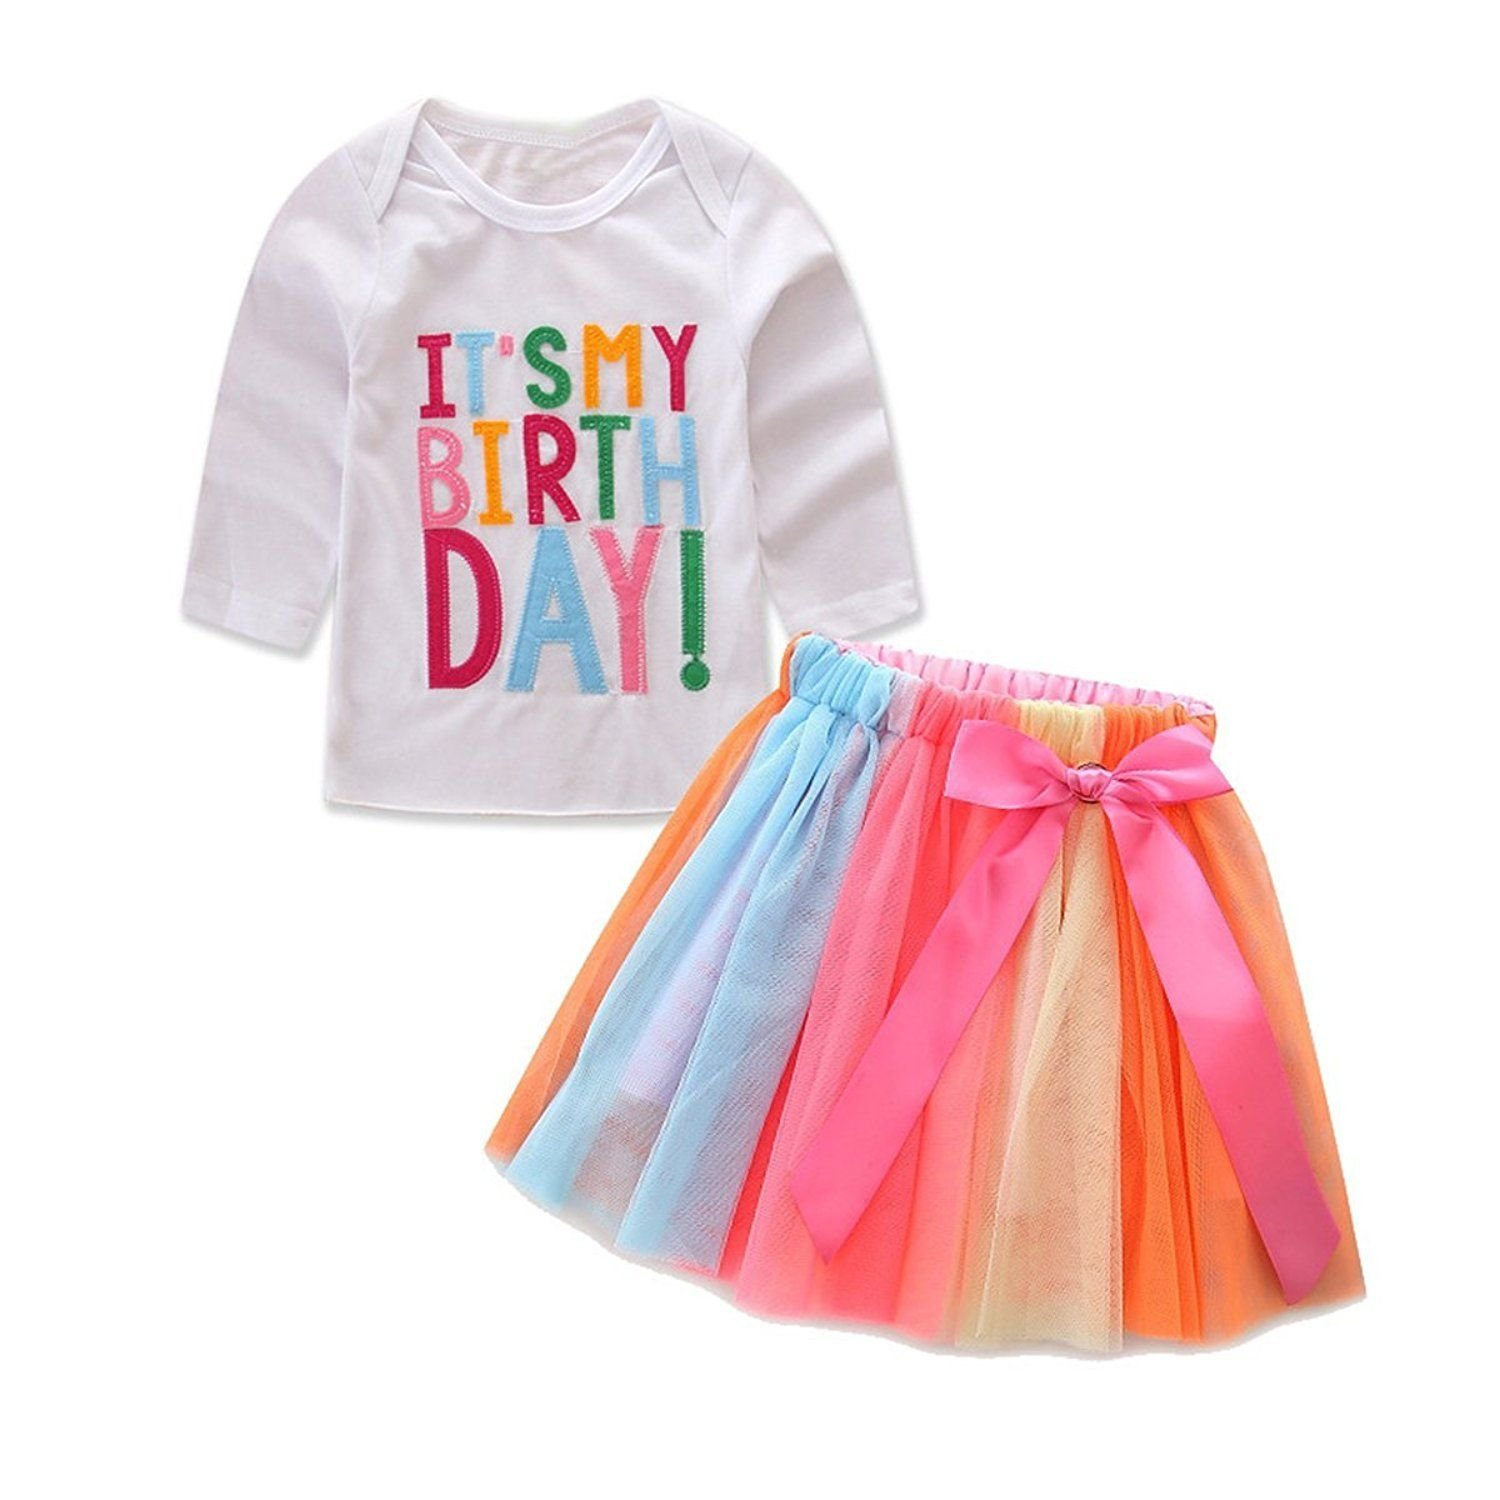 Baby Girl Its My Birthday Letter Print T-Shirt With Rainbow Tutu Dress Set 1-6T